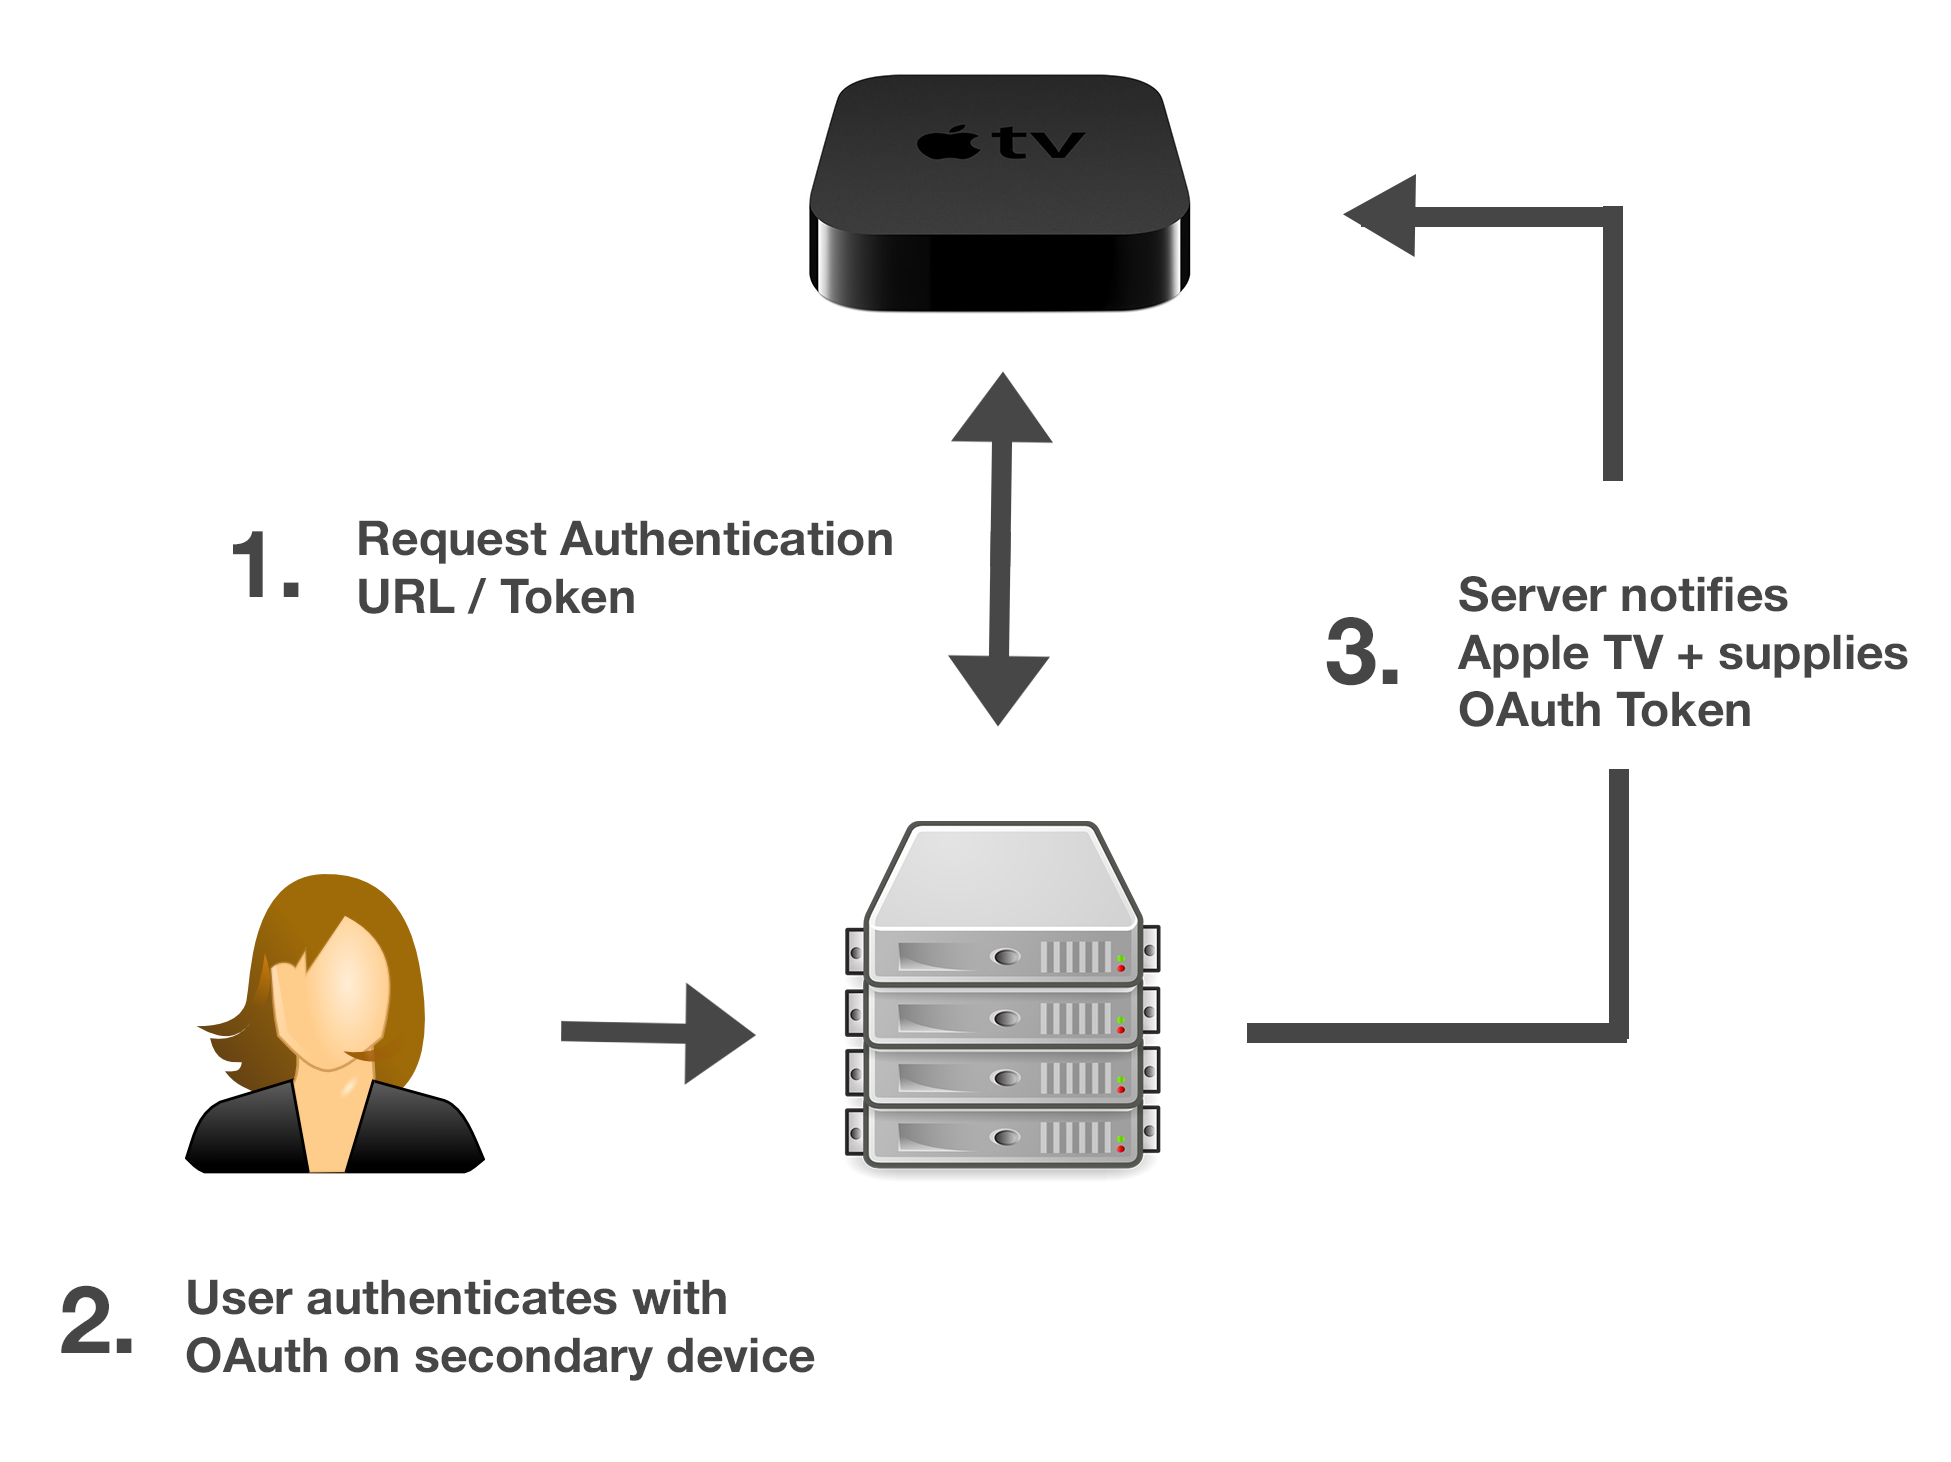 Proposed Authentication Flow